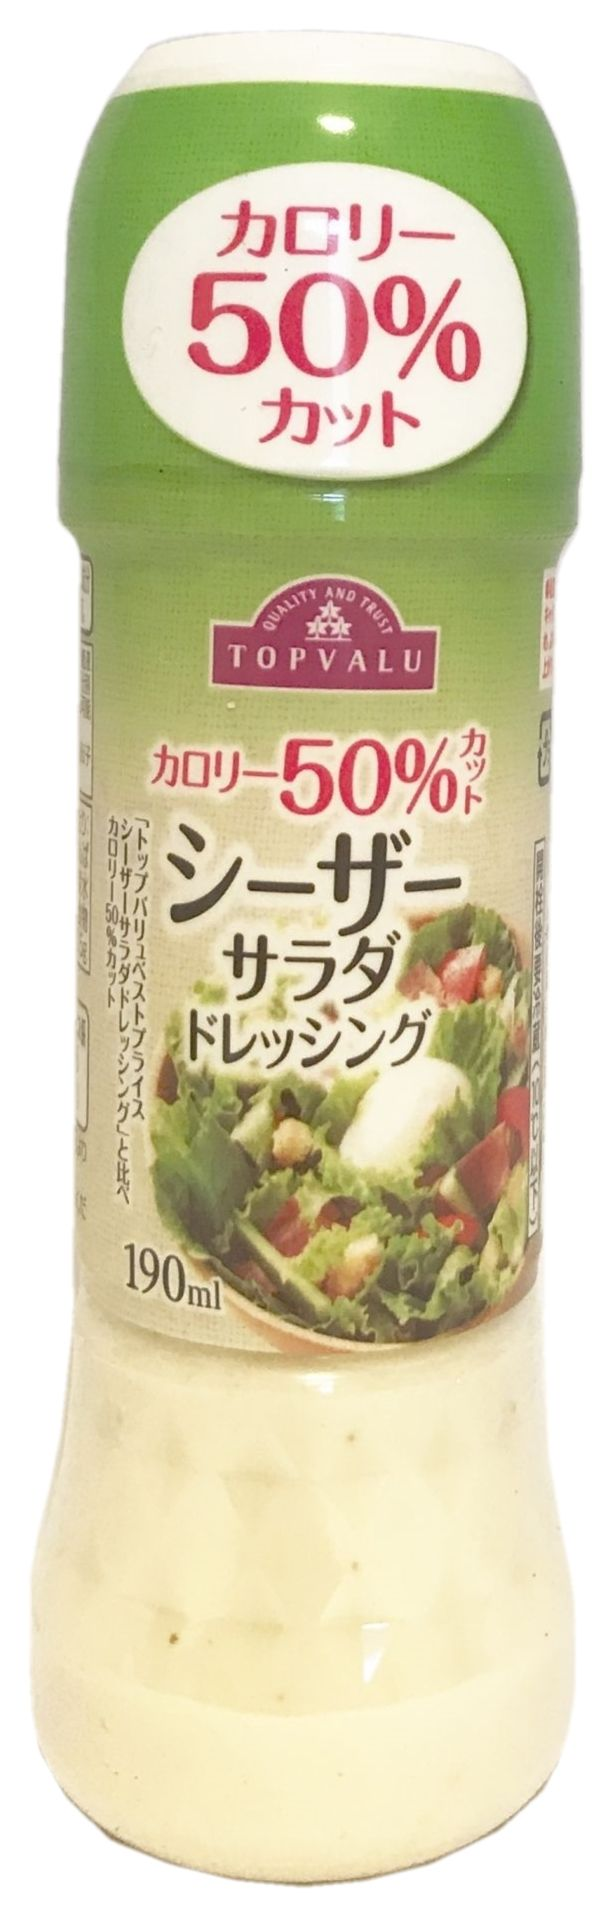 Topvalu salad dressing